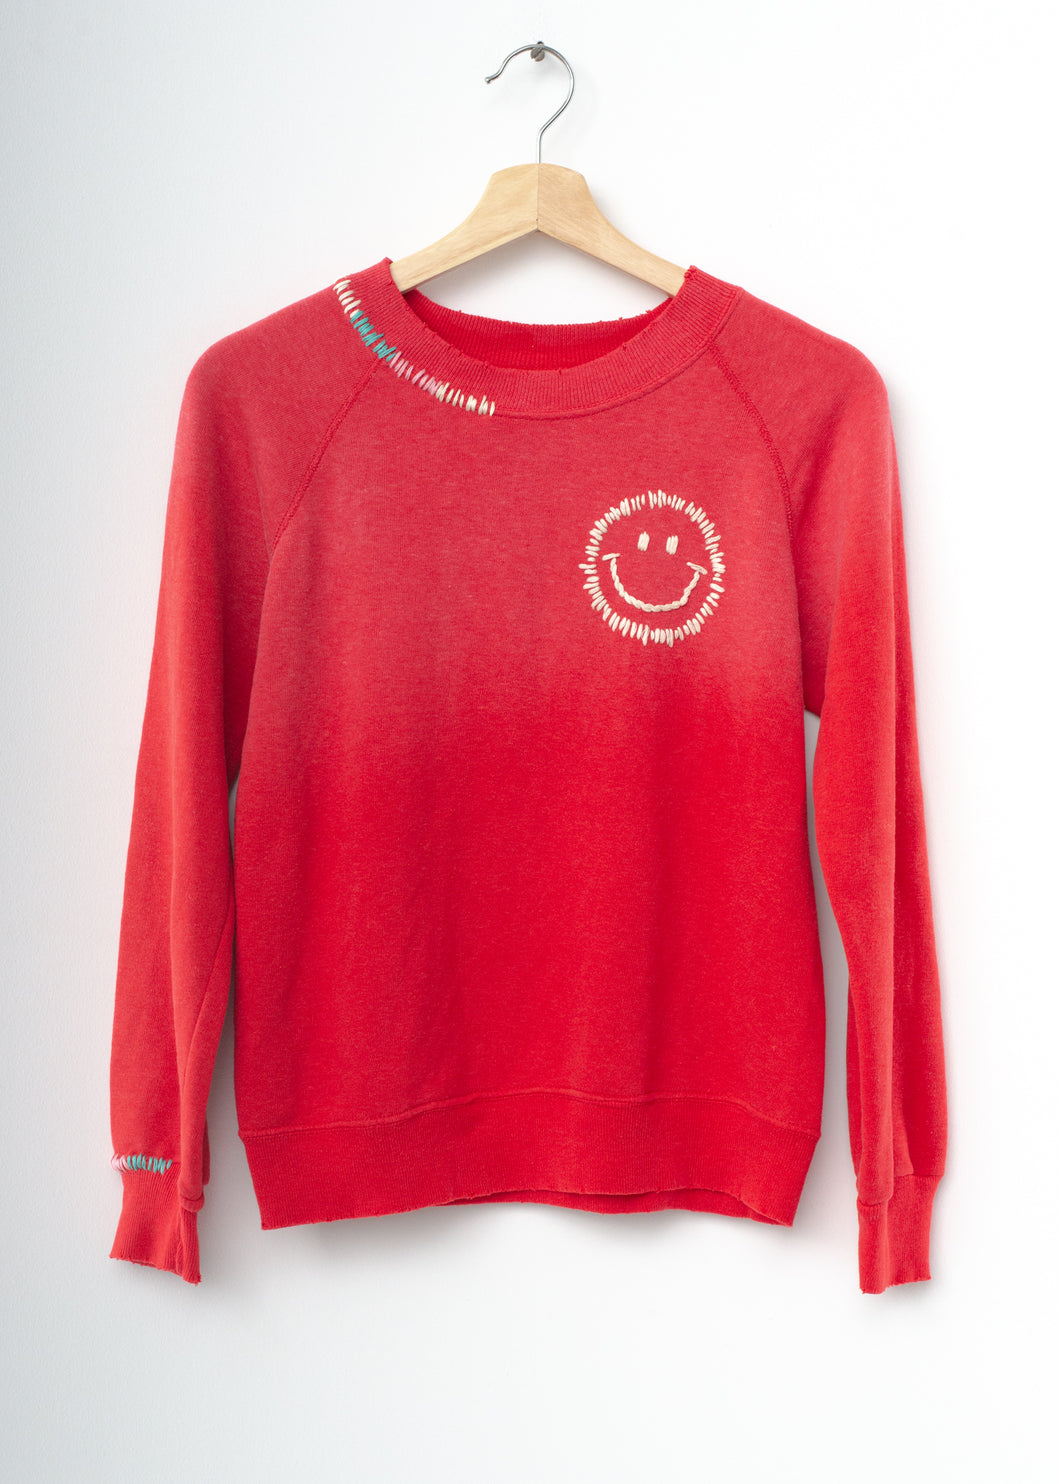 Happy Face Rainbow Sweatshirt - Red